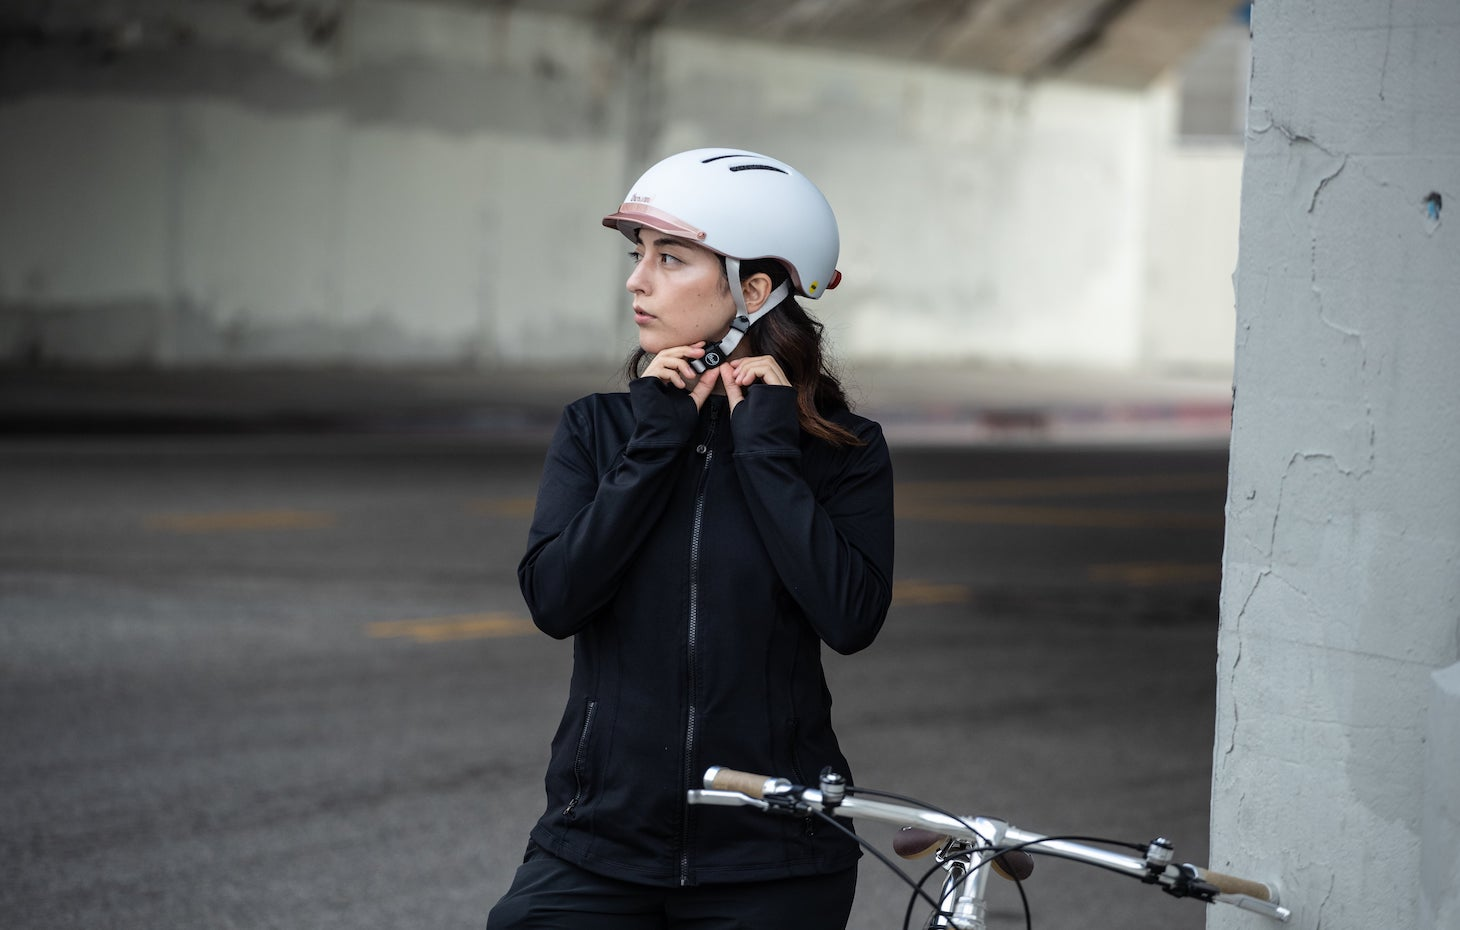 FINDING THE BEST BIKE HELMET FOR YOUR NEEDS